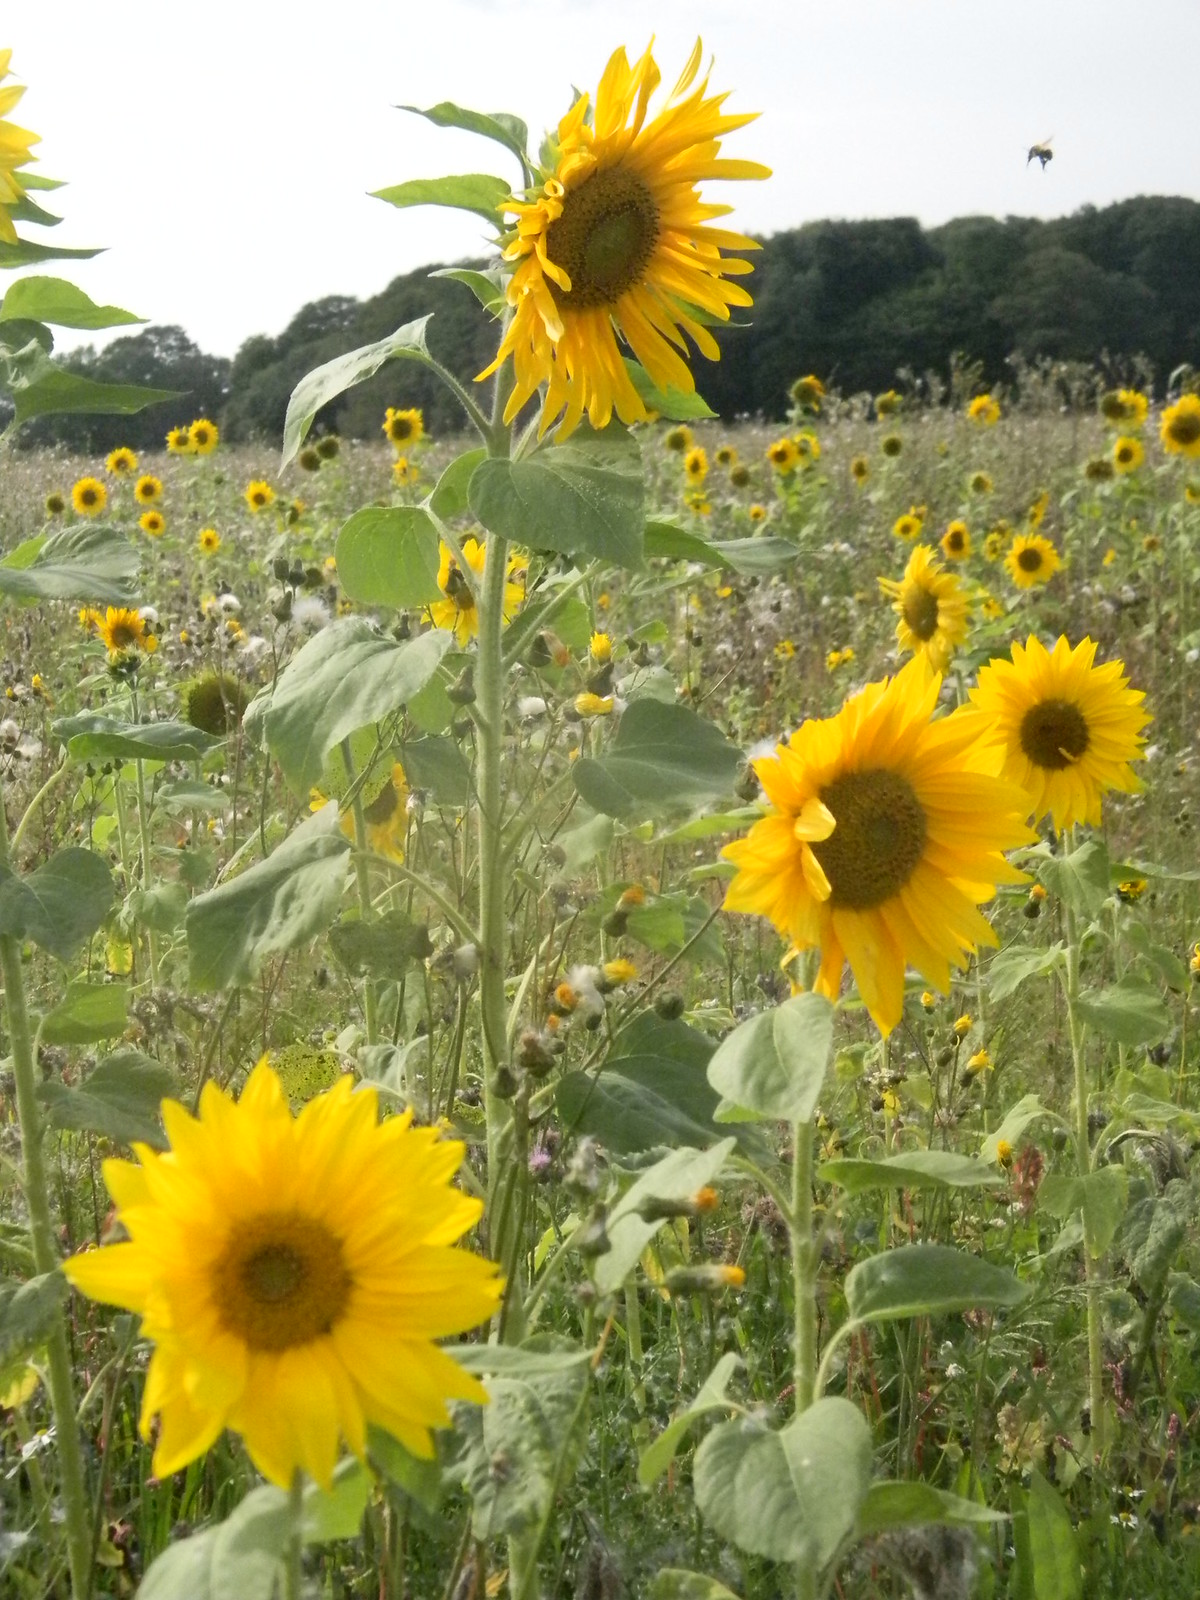 Sunflowers Chesham to Great Missenden